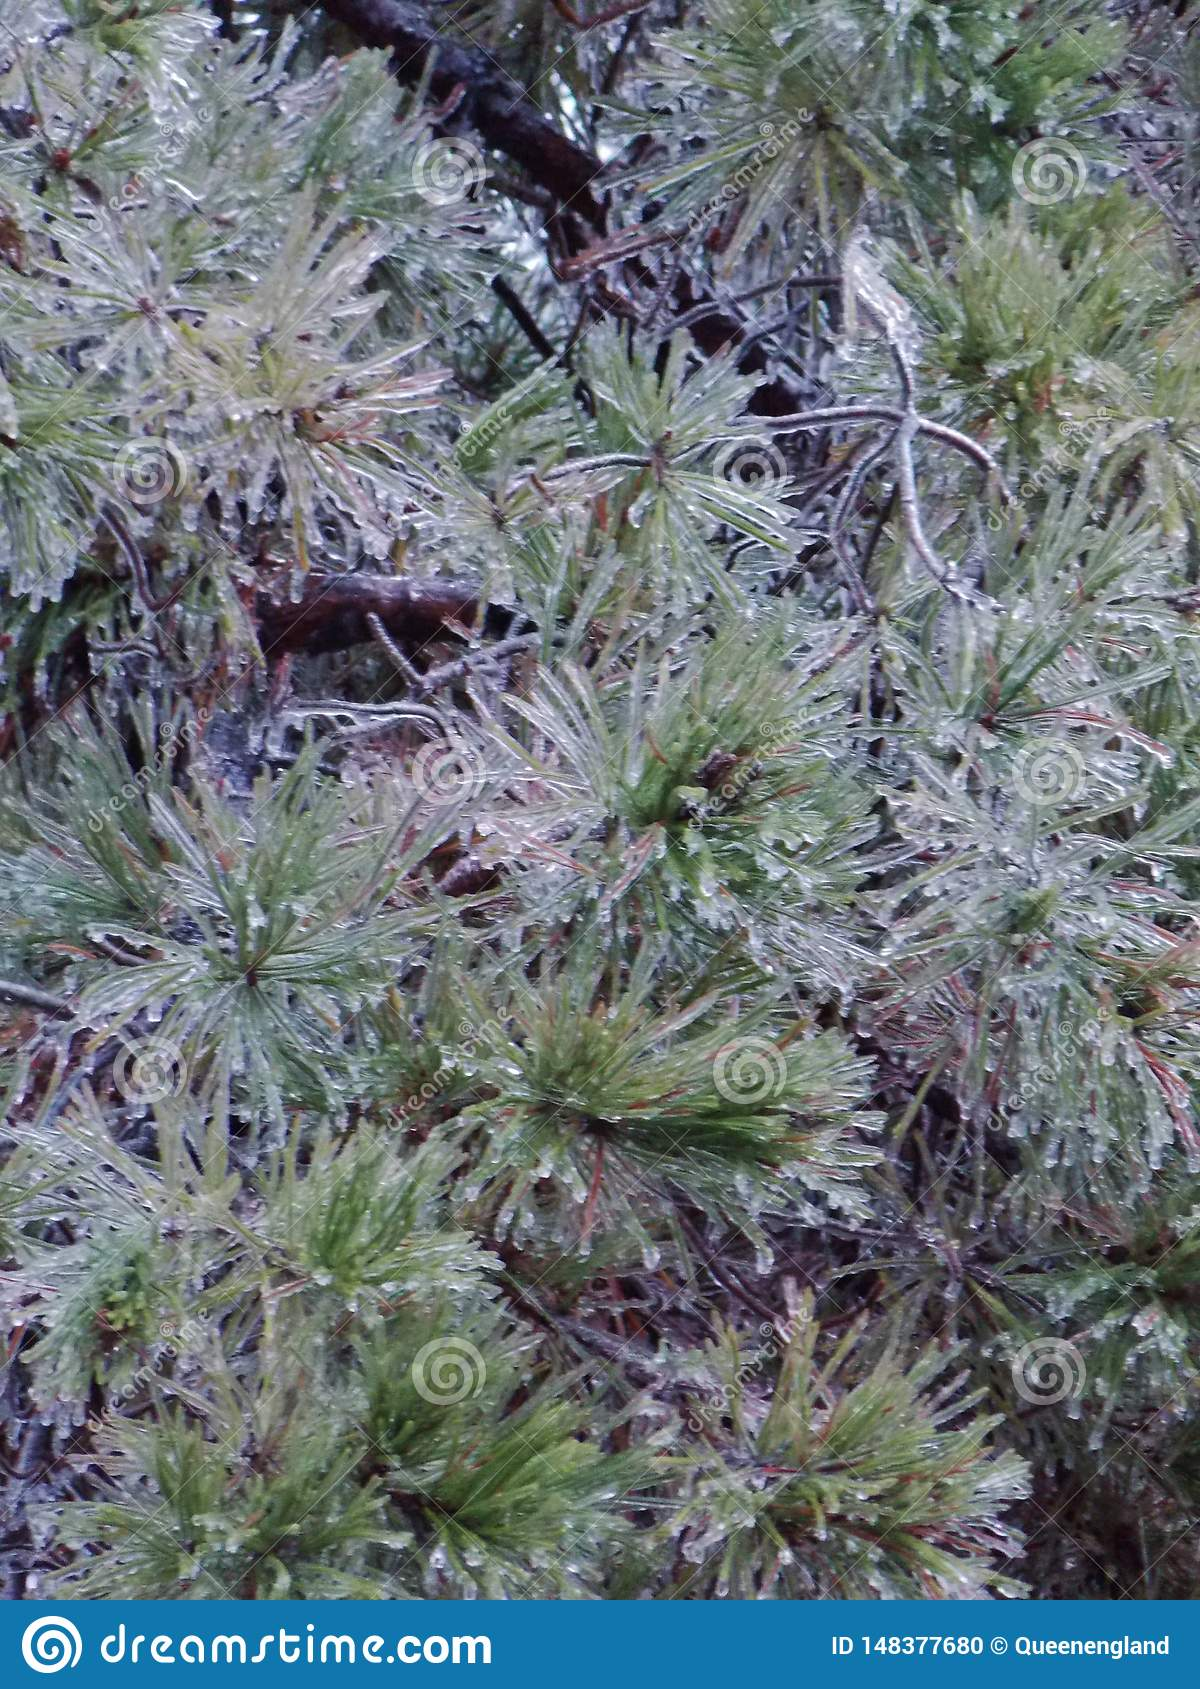 Loblolly Icy Pine Needles during Texas Winter